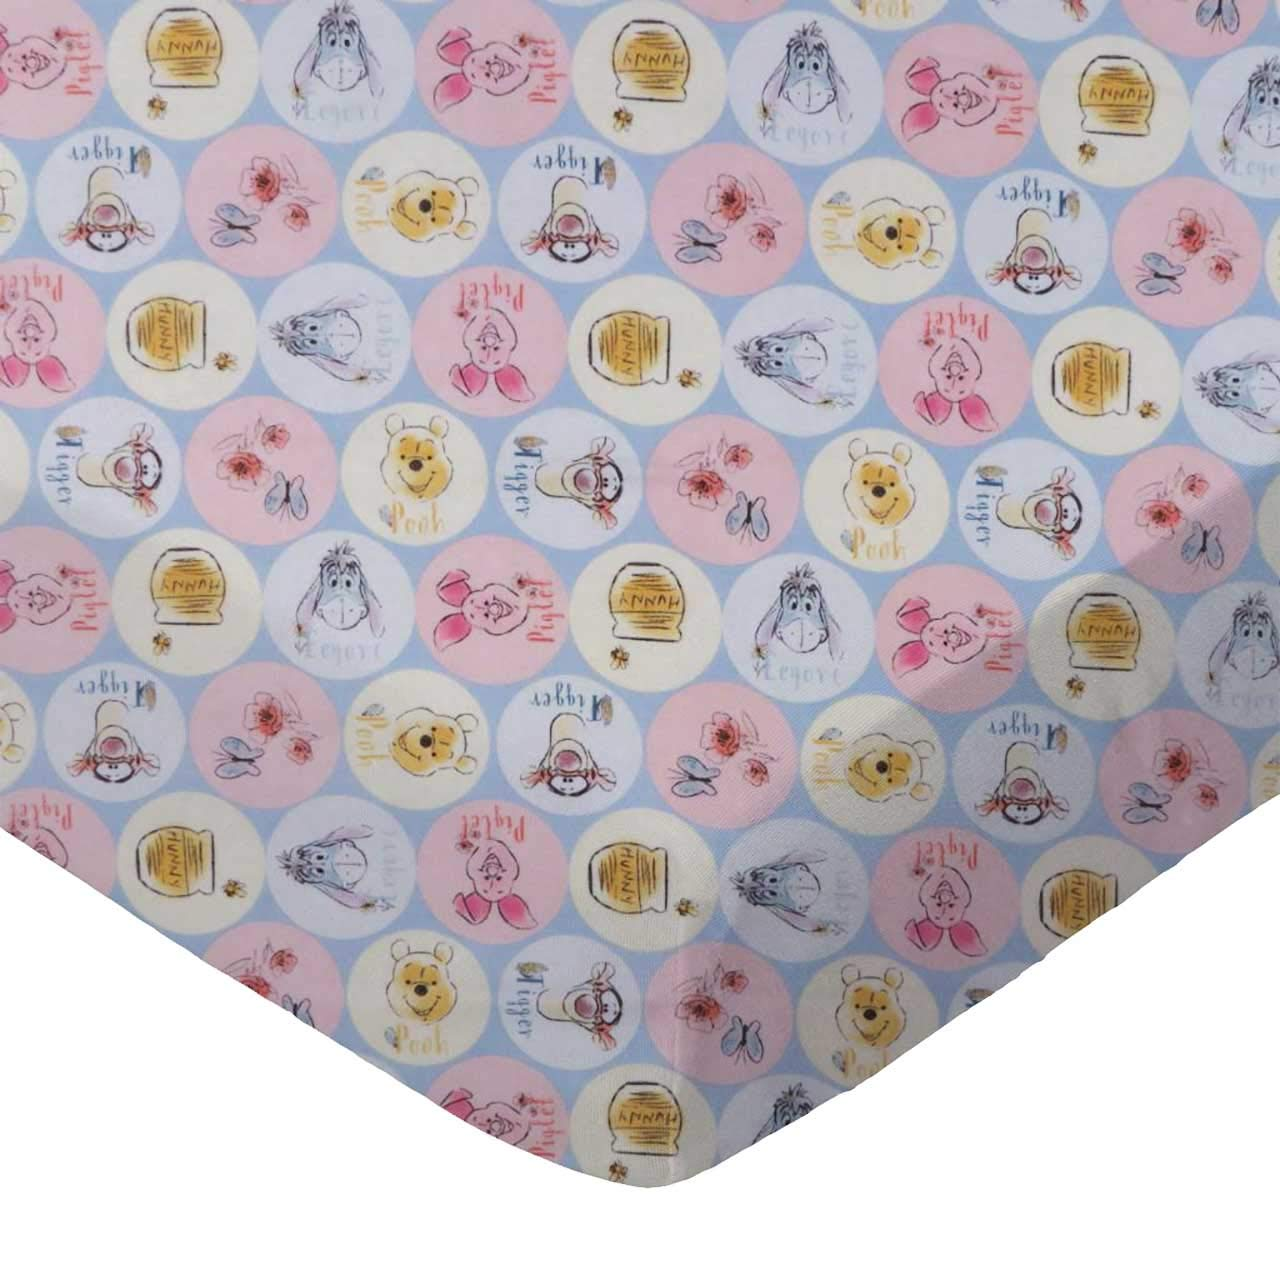 SheetWorld Fitted 100% Cotton Percale Pack N Play Sheet Fits Graco 27 x 39, Pooh & Friends Circles, Made in USA